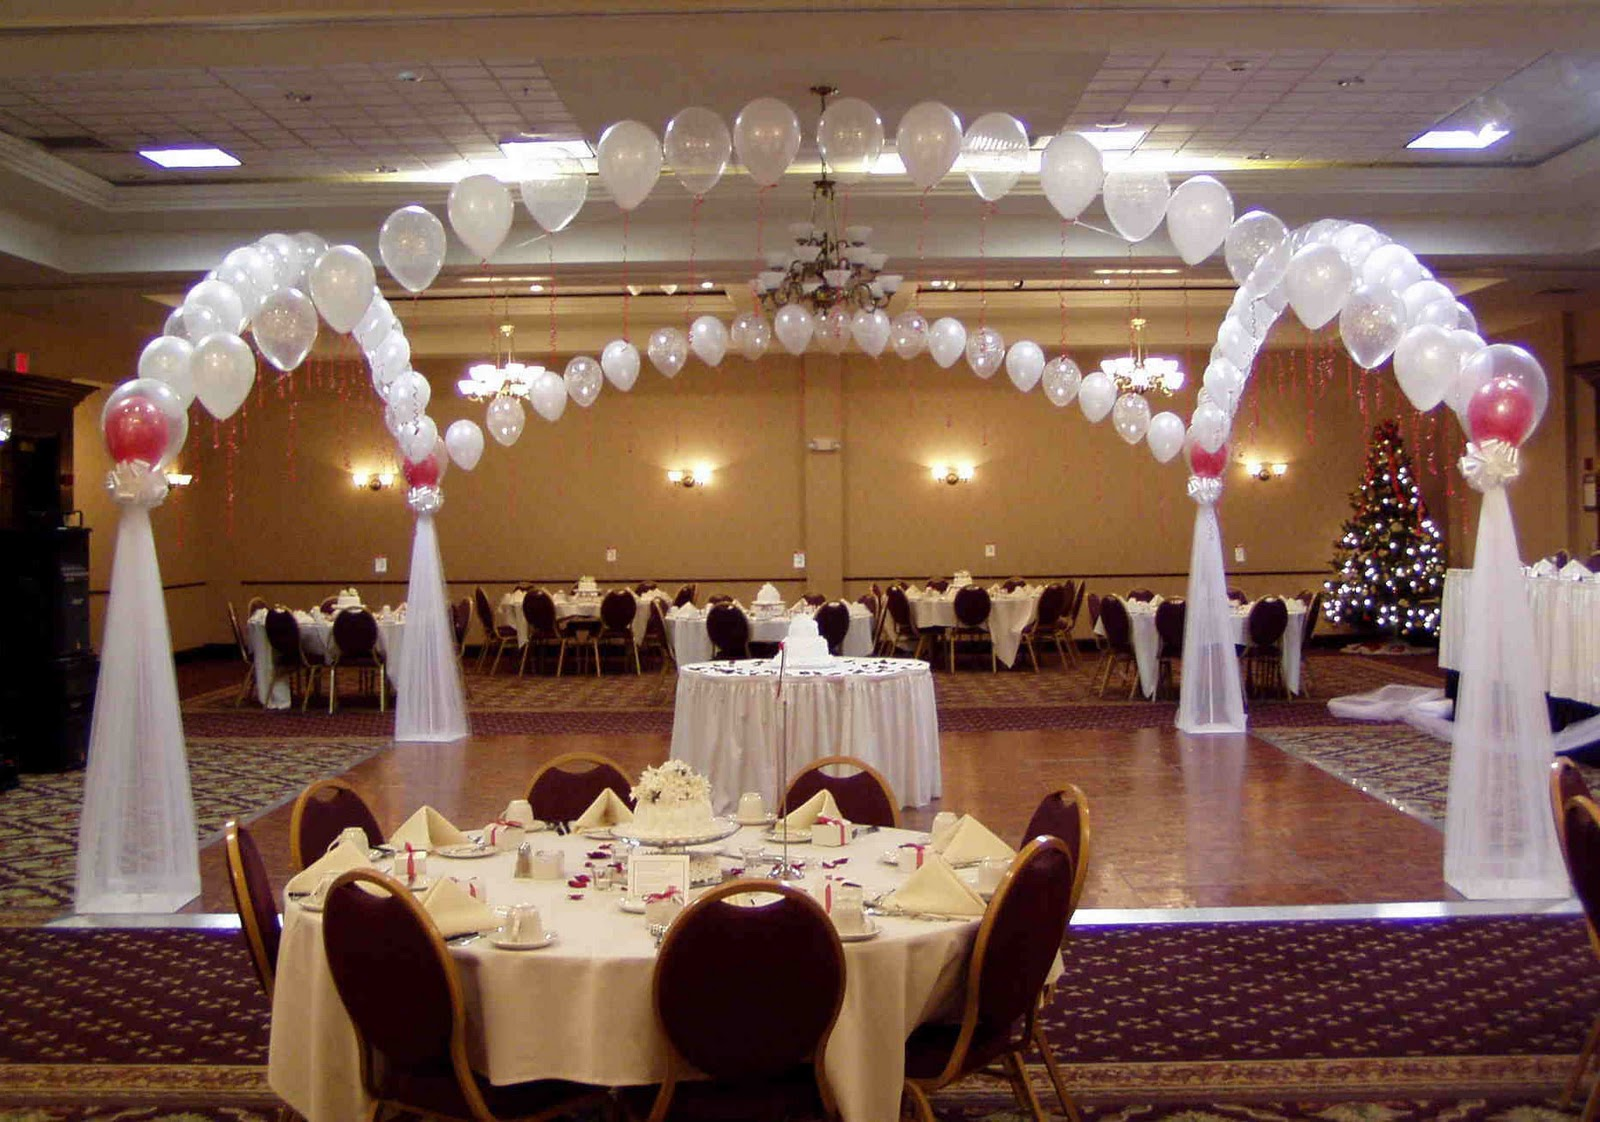 Wedding Balloon Decoration Ideas